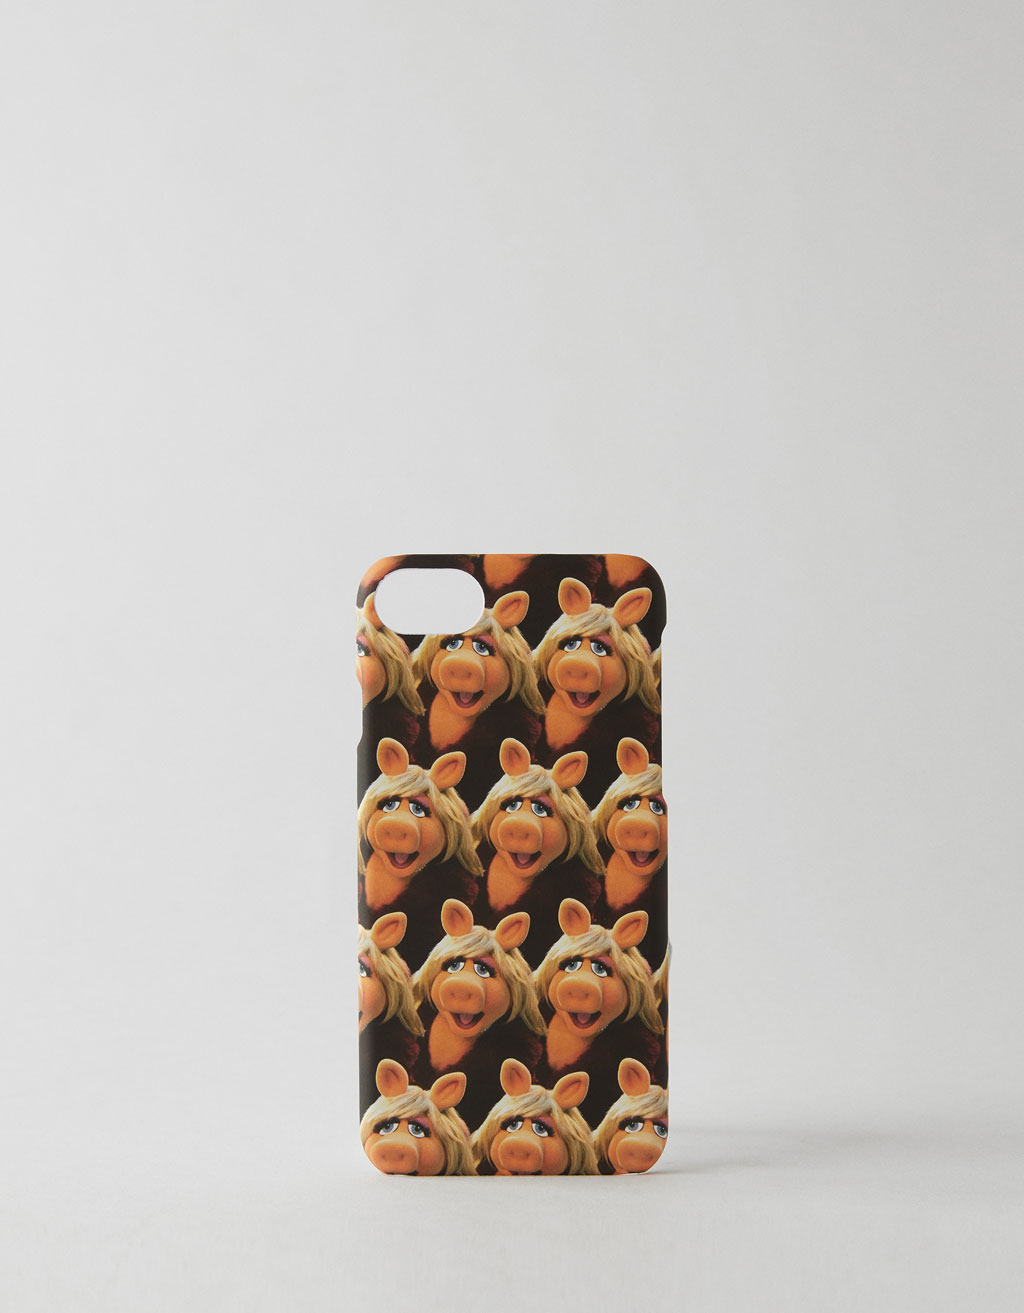 Carcasa Muppets Miss Piggy  iPhone 6 / 6S / 7/ 8